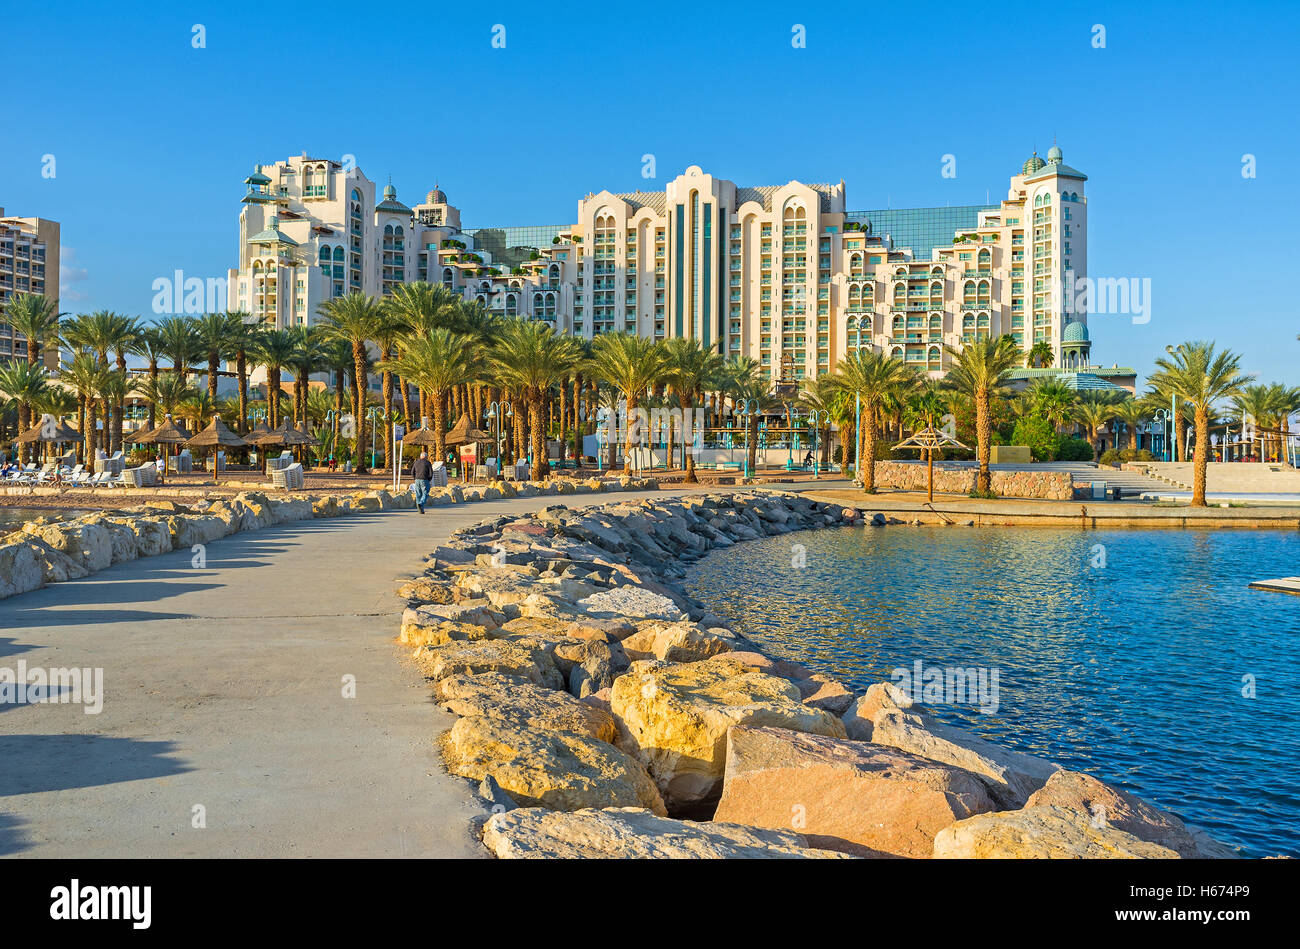 The promenades and piers of Eilat are the best places in resort to enjoy the lazy walks and views, Israel. - Stock Image